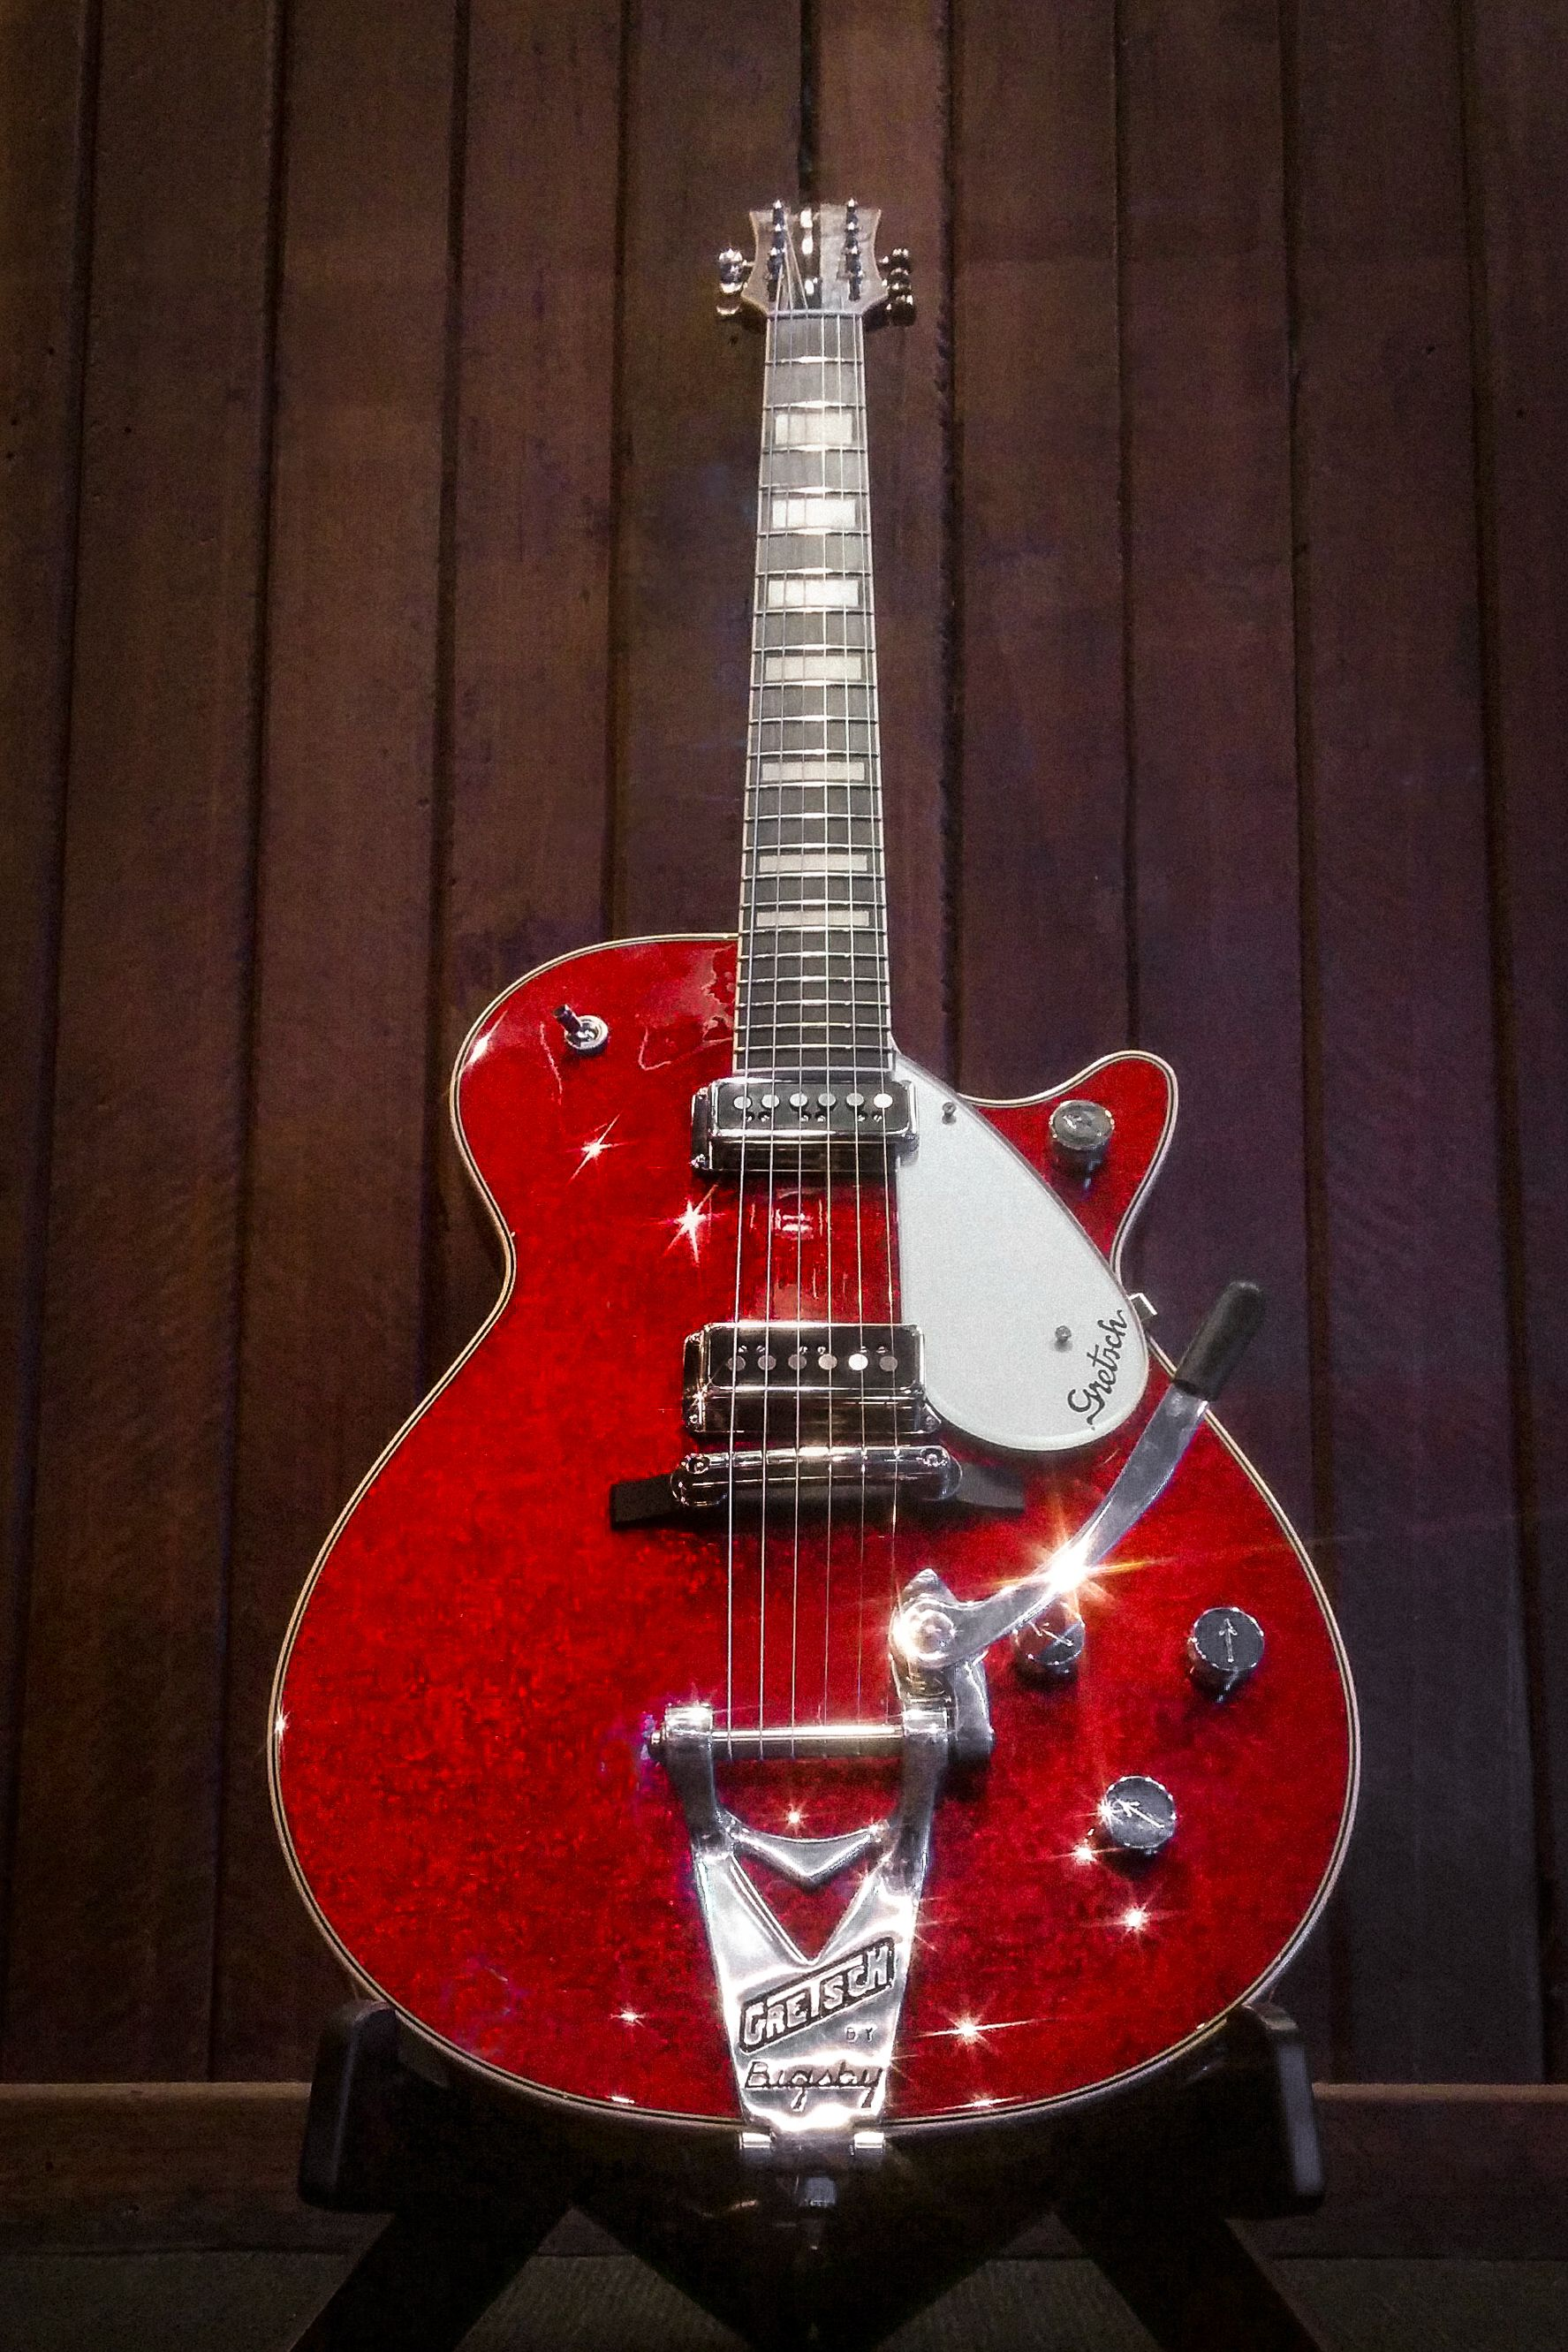 Gretsch G6129 with Red Sparkles and That Great Gretsch Sound. #gretsch #gretschguitars #guitar #electricguitar #thatgreatgretschsound #duojet #gretschduojet #bigsby